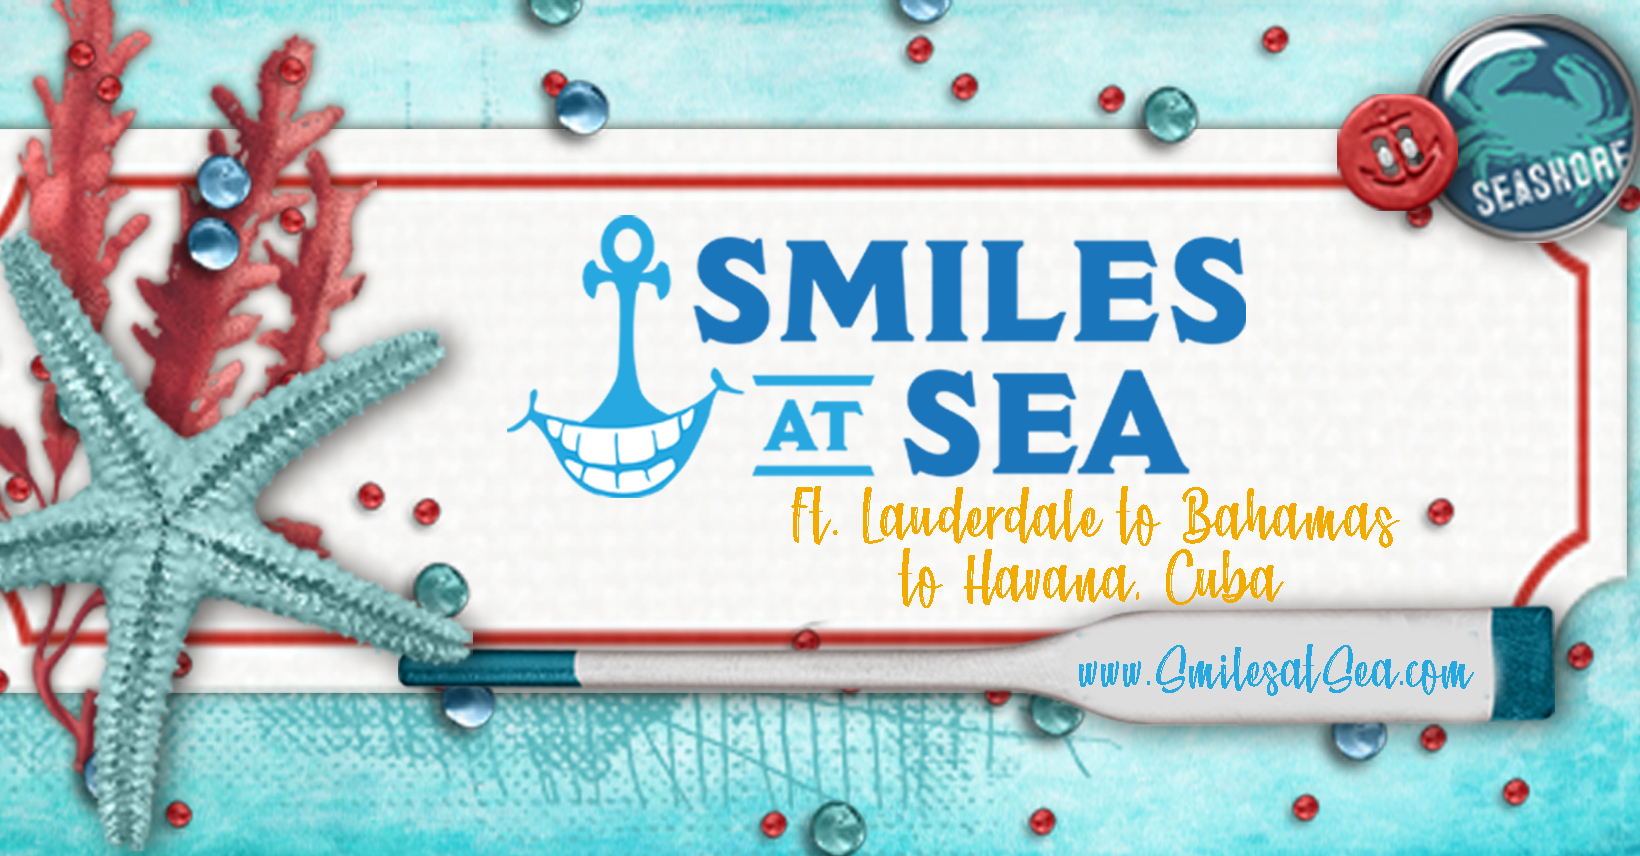 Smiles at Sea - Cuba & Bahamas March 2019